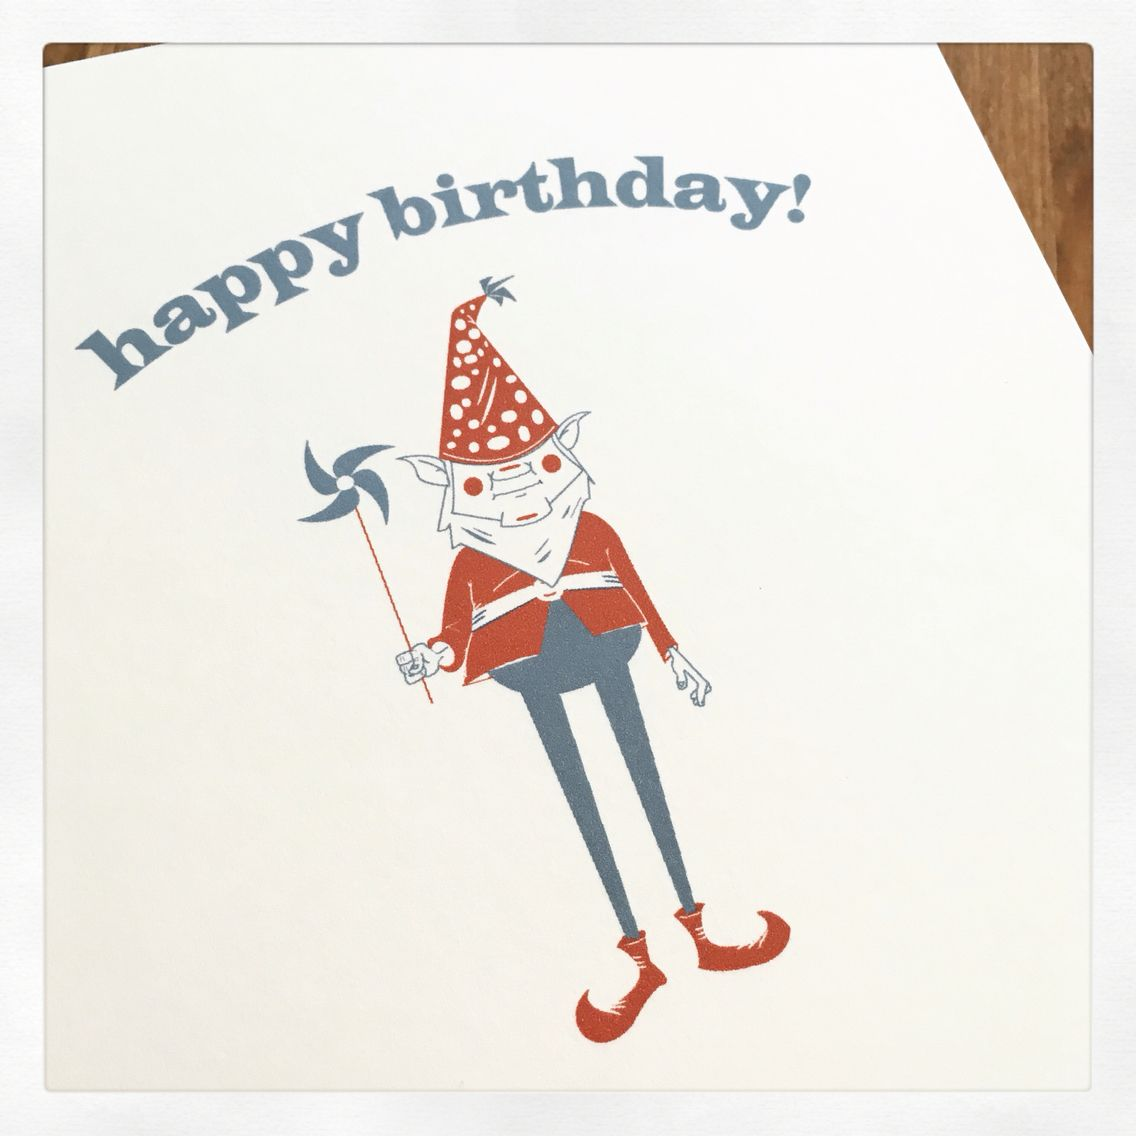 Gnome birthday card design design pinterest gnomes and note gnome birthday card design bookmarktalkfo Image collections